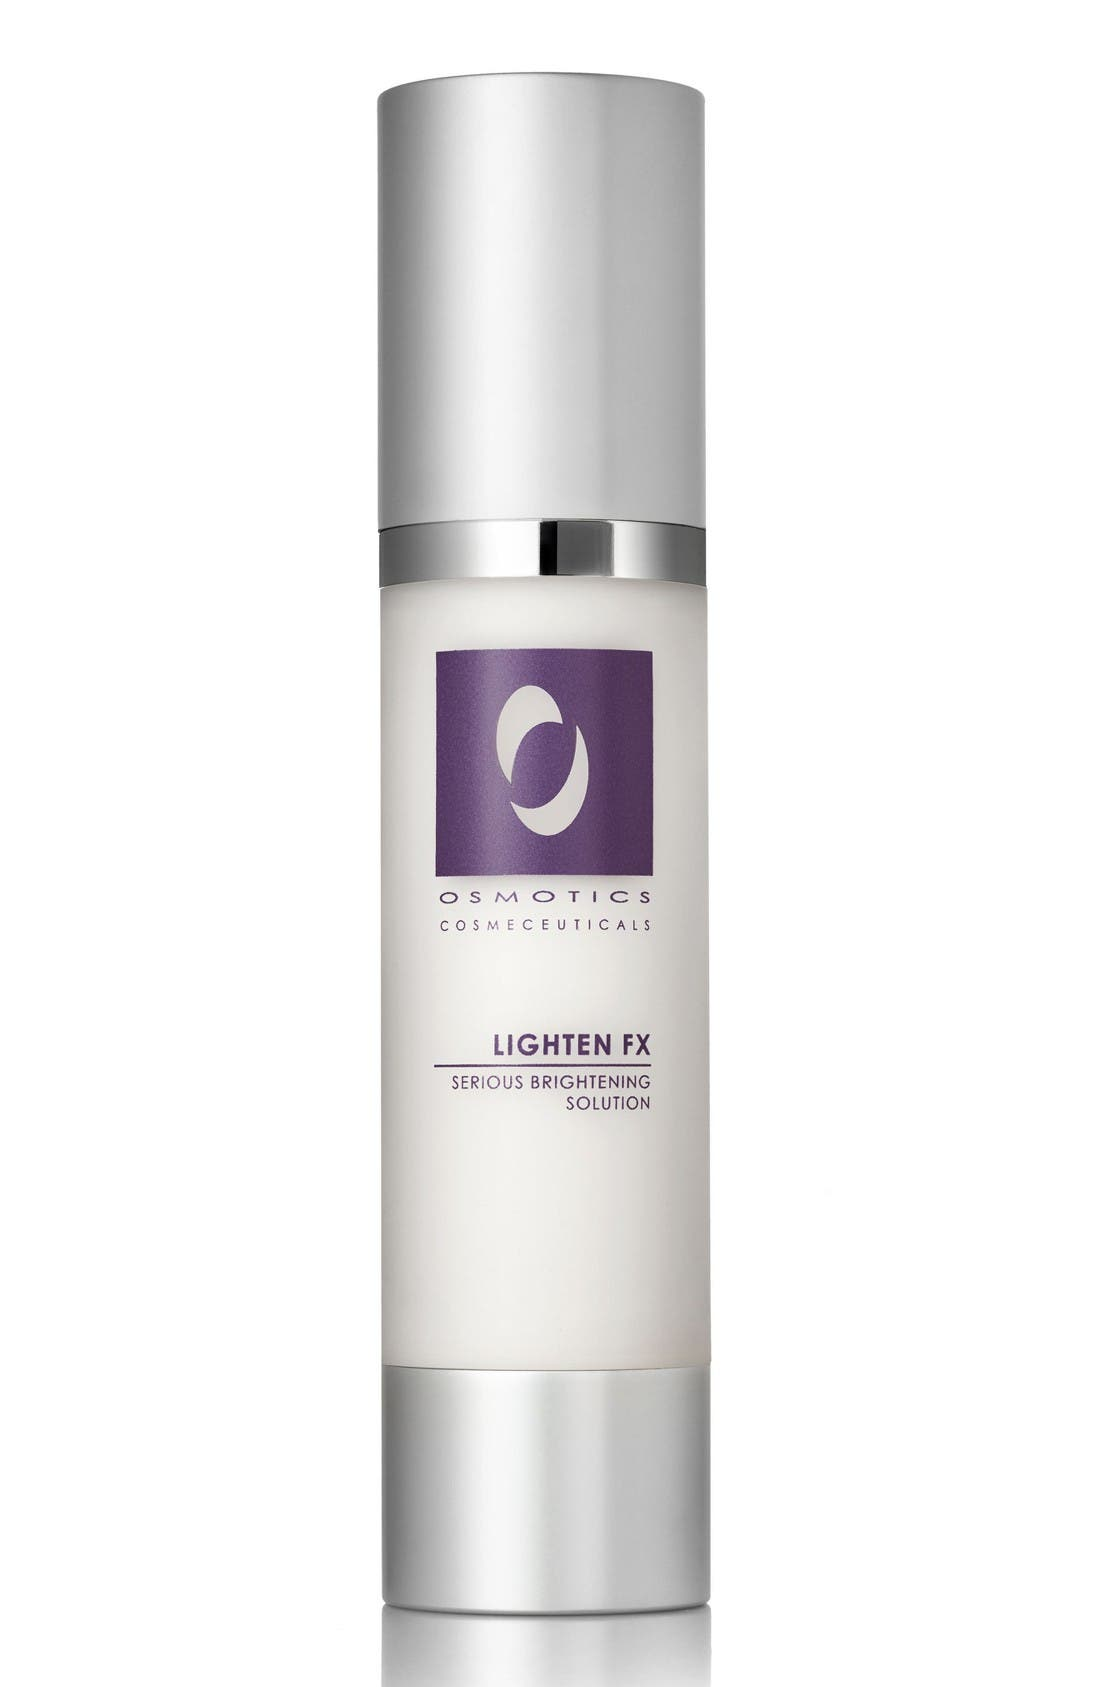 Osmotics Cosmeceuticals Lighten FX Serious Brightening Solution